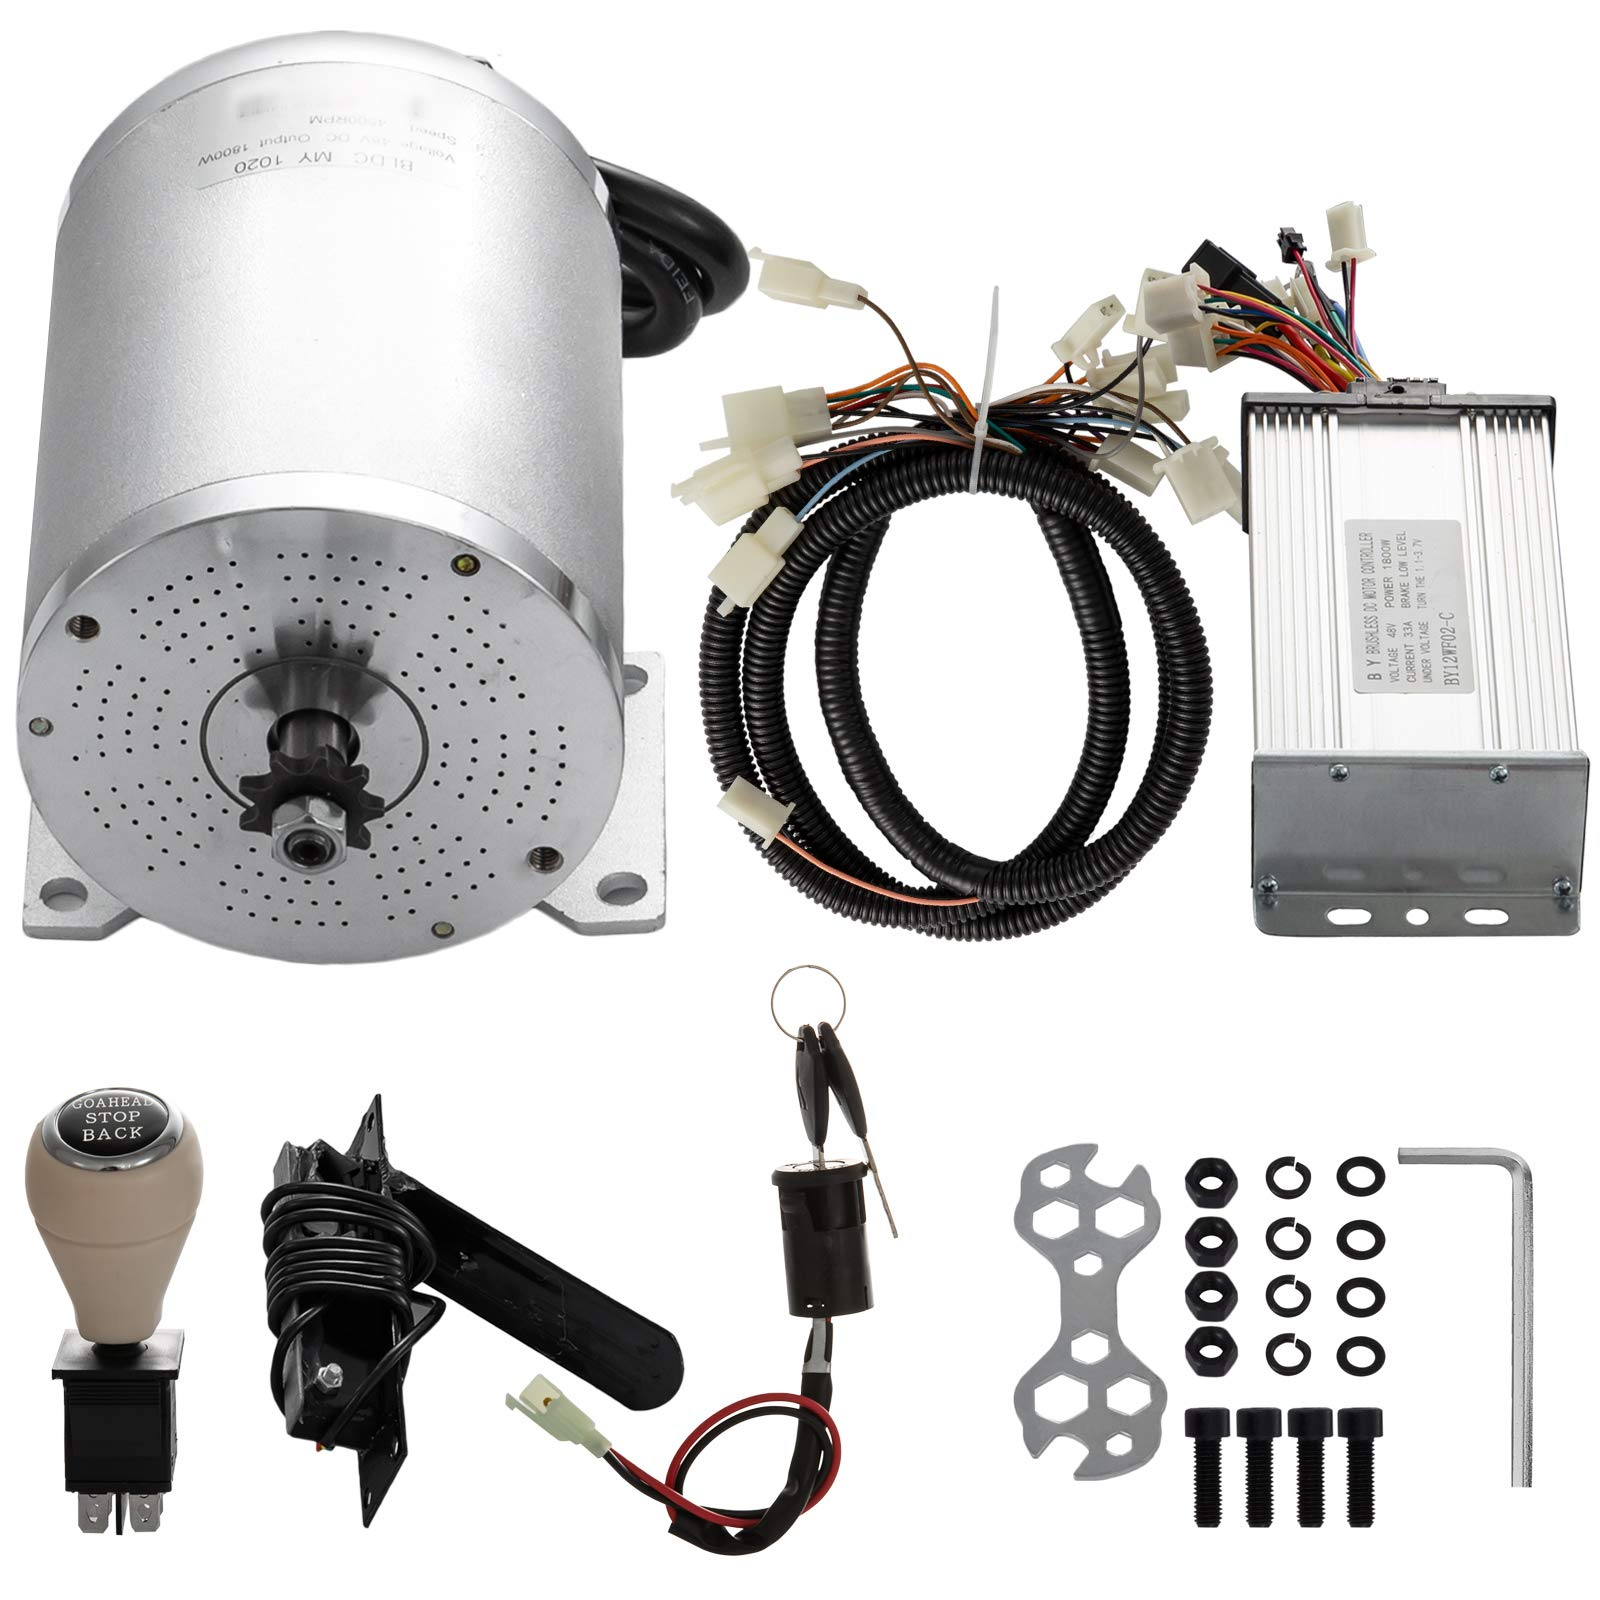 Mophorn Electric Brushless Motor 48V DC 1000 Watt with Controller & Pedal &Charger 9 Tooth 8 Chain Sprocket and Mounting Bracket for Go Karts Scooters & E-Bike